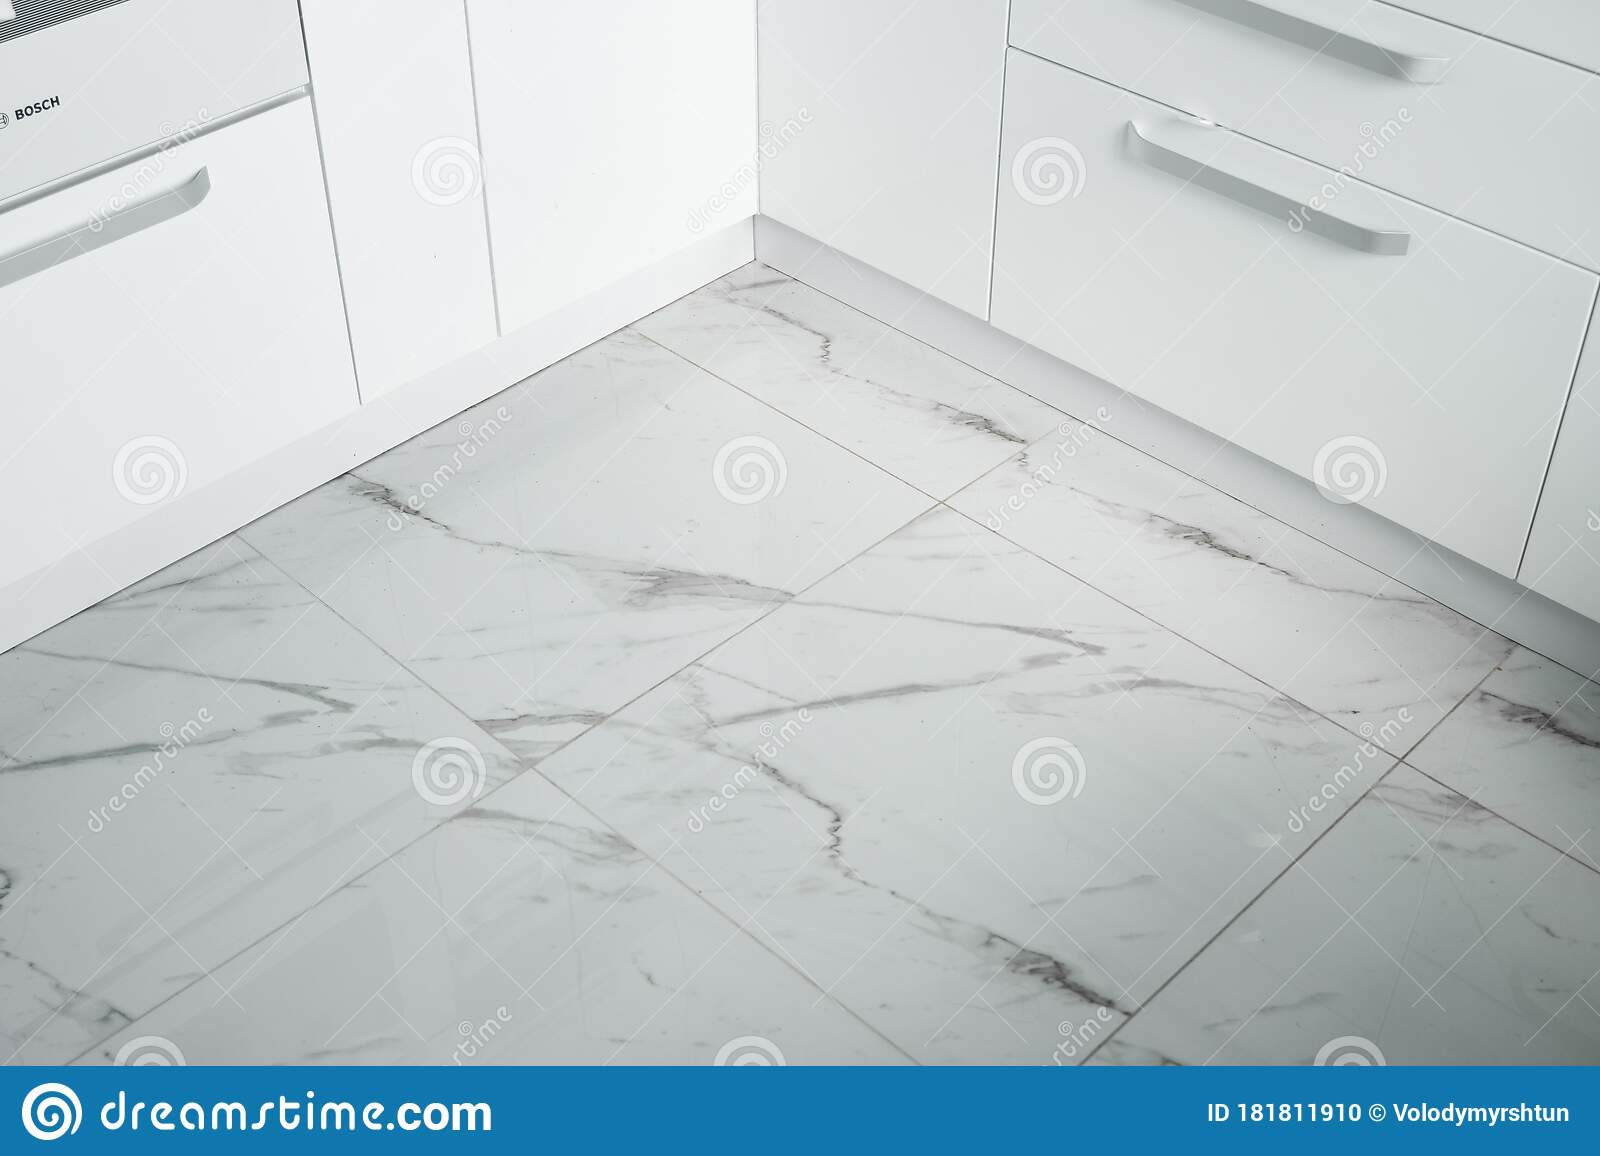 White Lacquered Kitchen Facades On A Comfortable Kitchen With A Marble Kitchen Tiles On The Floor Modern White Kitchen Stock Photo Image Of Beautiful Flat 181811910